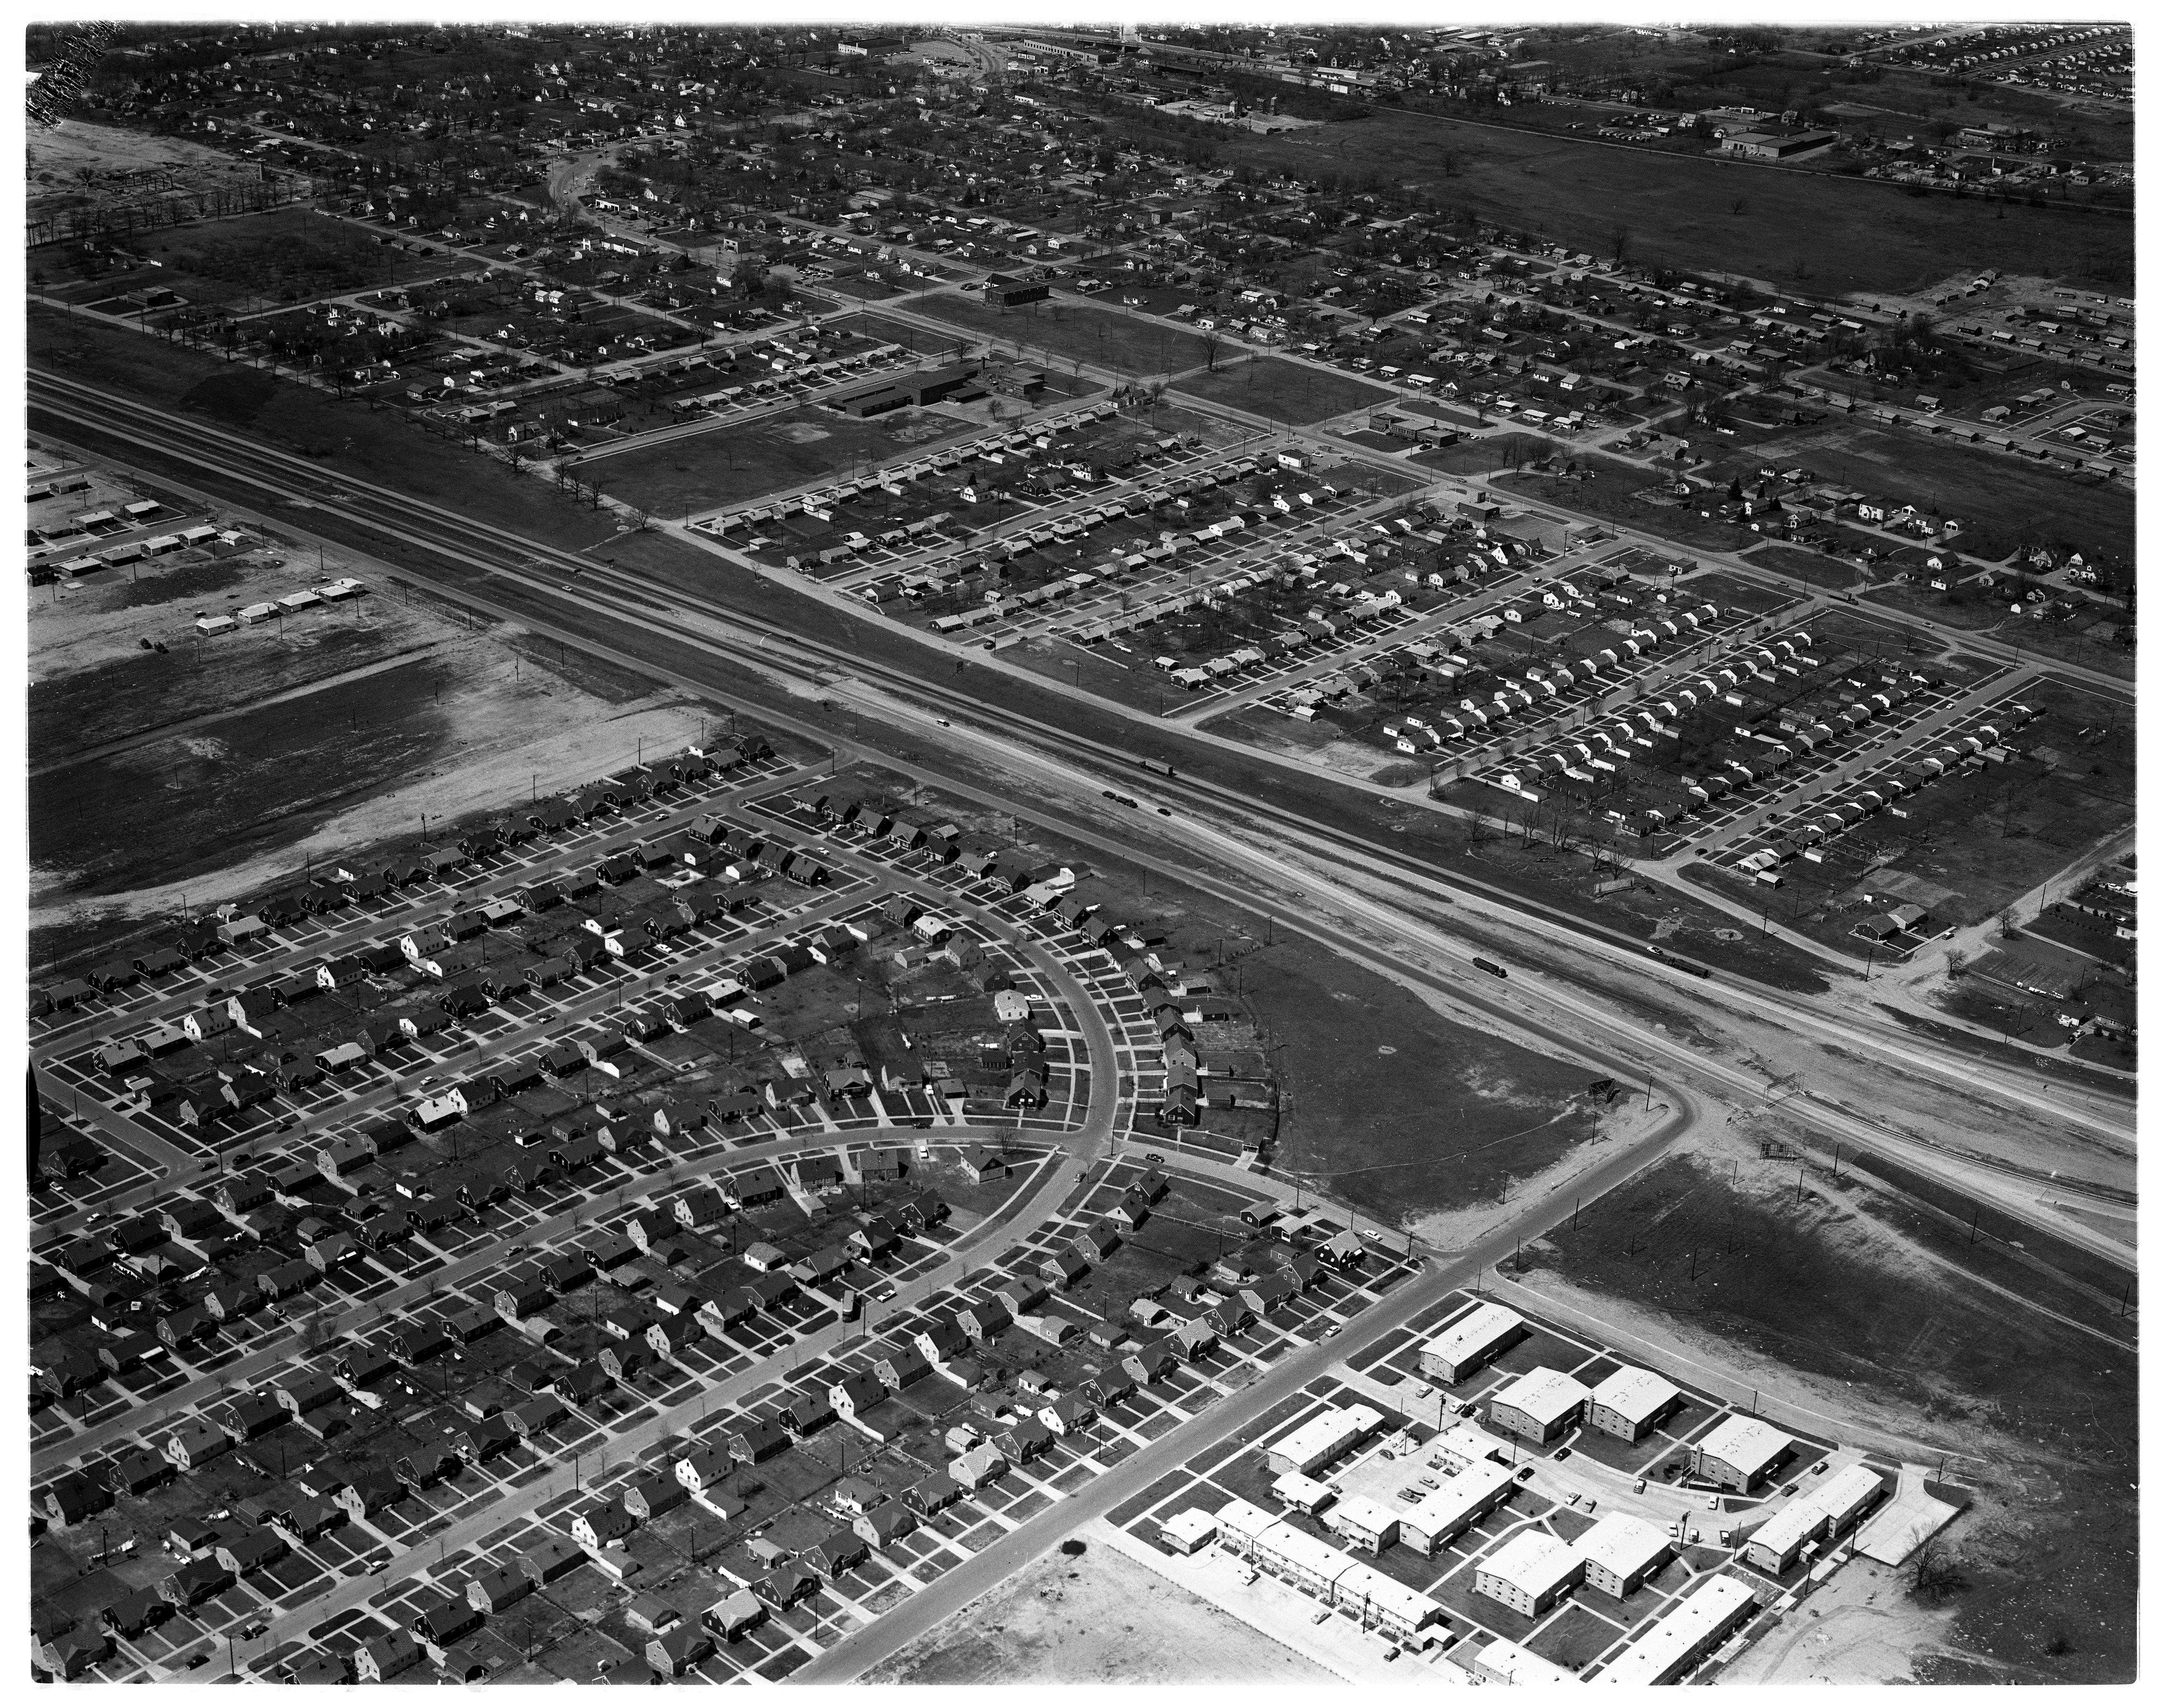 Aerial Photograph of the Proposed US 12 Overpasses, Ypsilanti Township, May 1959 image